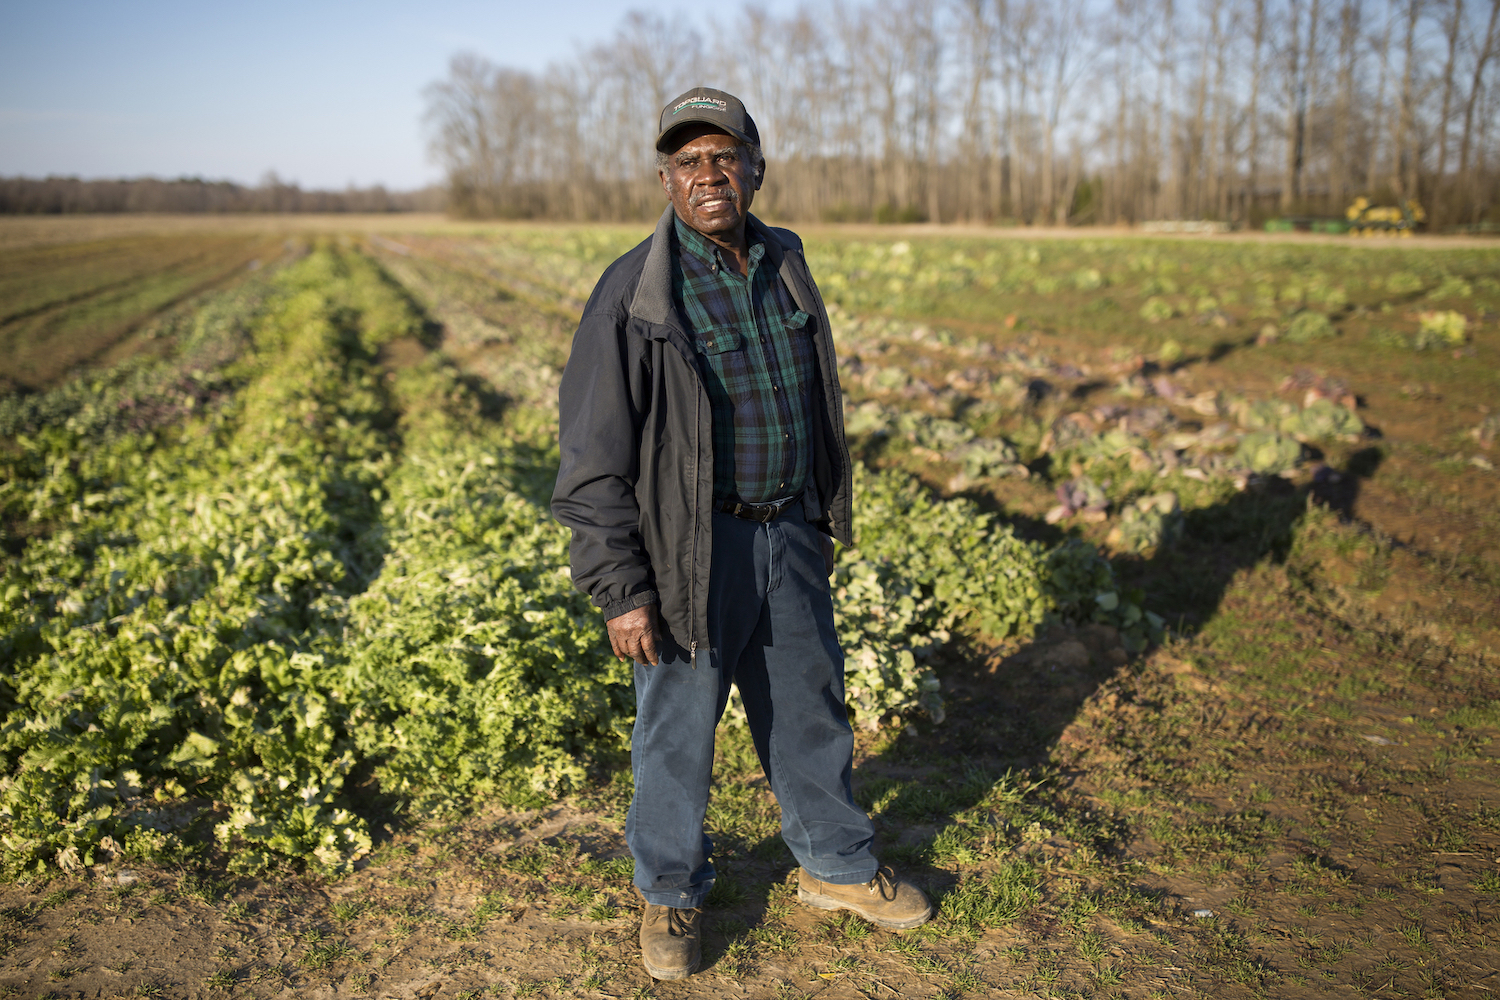 Former extension agent Haywood Harrell stands on his farm in Tillery, North Carolina